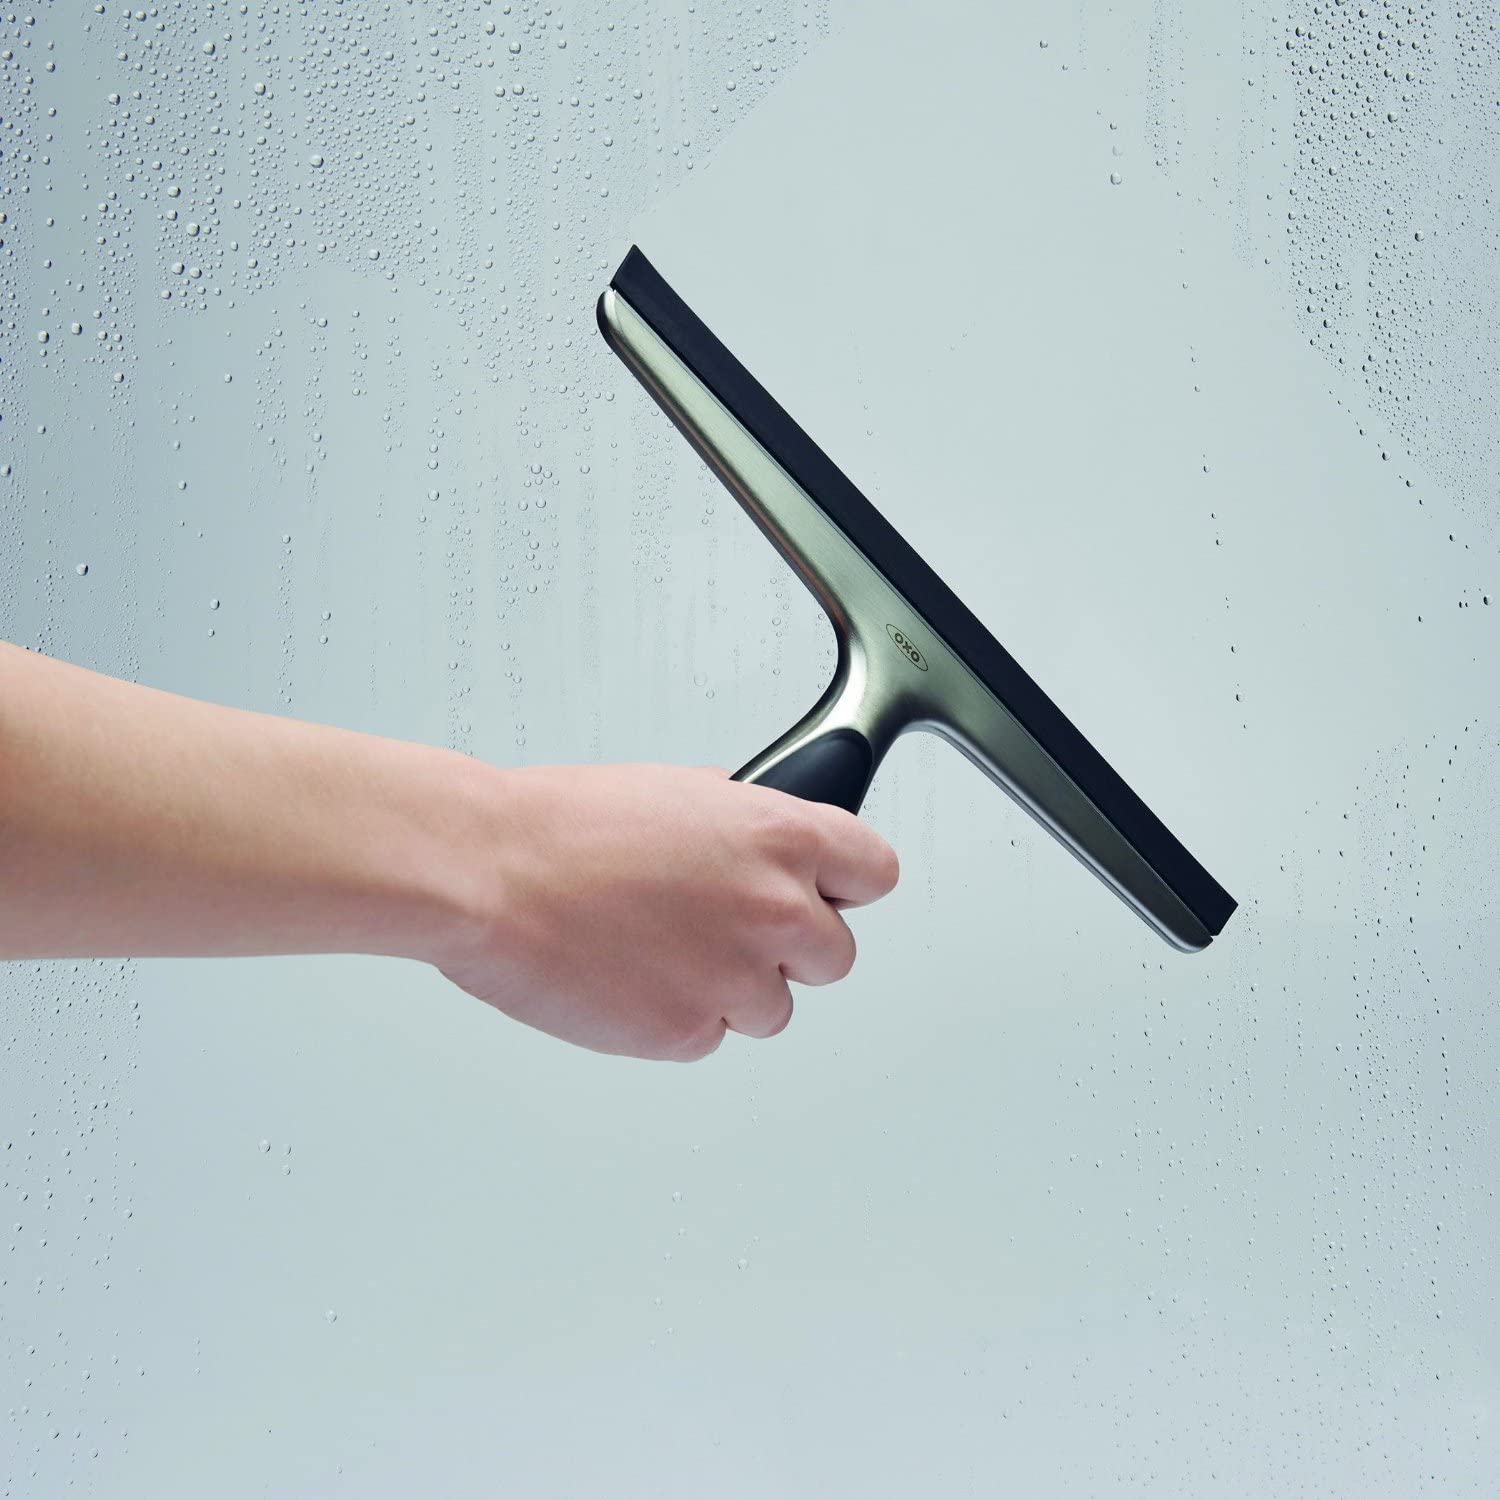 Set of 2 OXO Good Grips Stainless Steel Squeegee